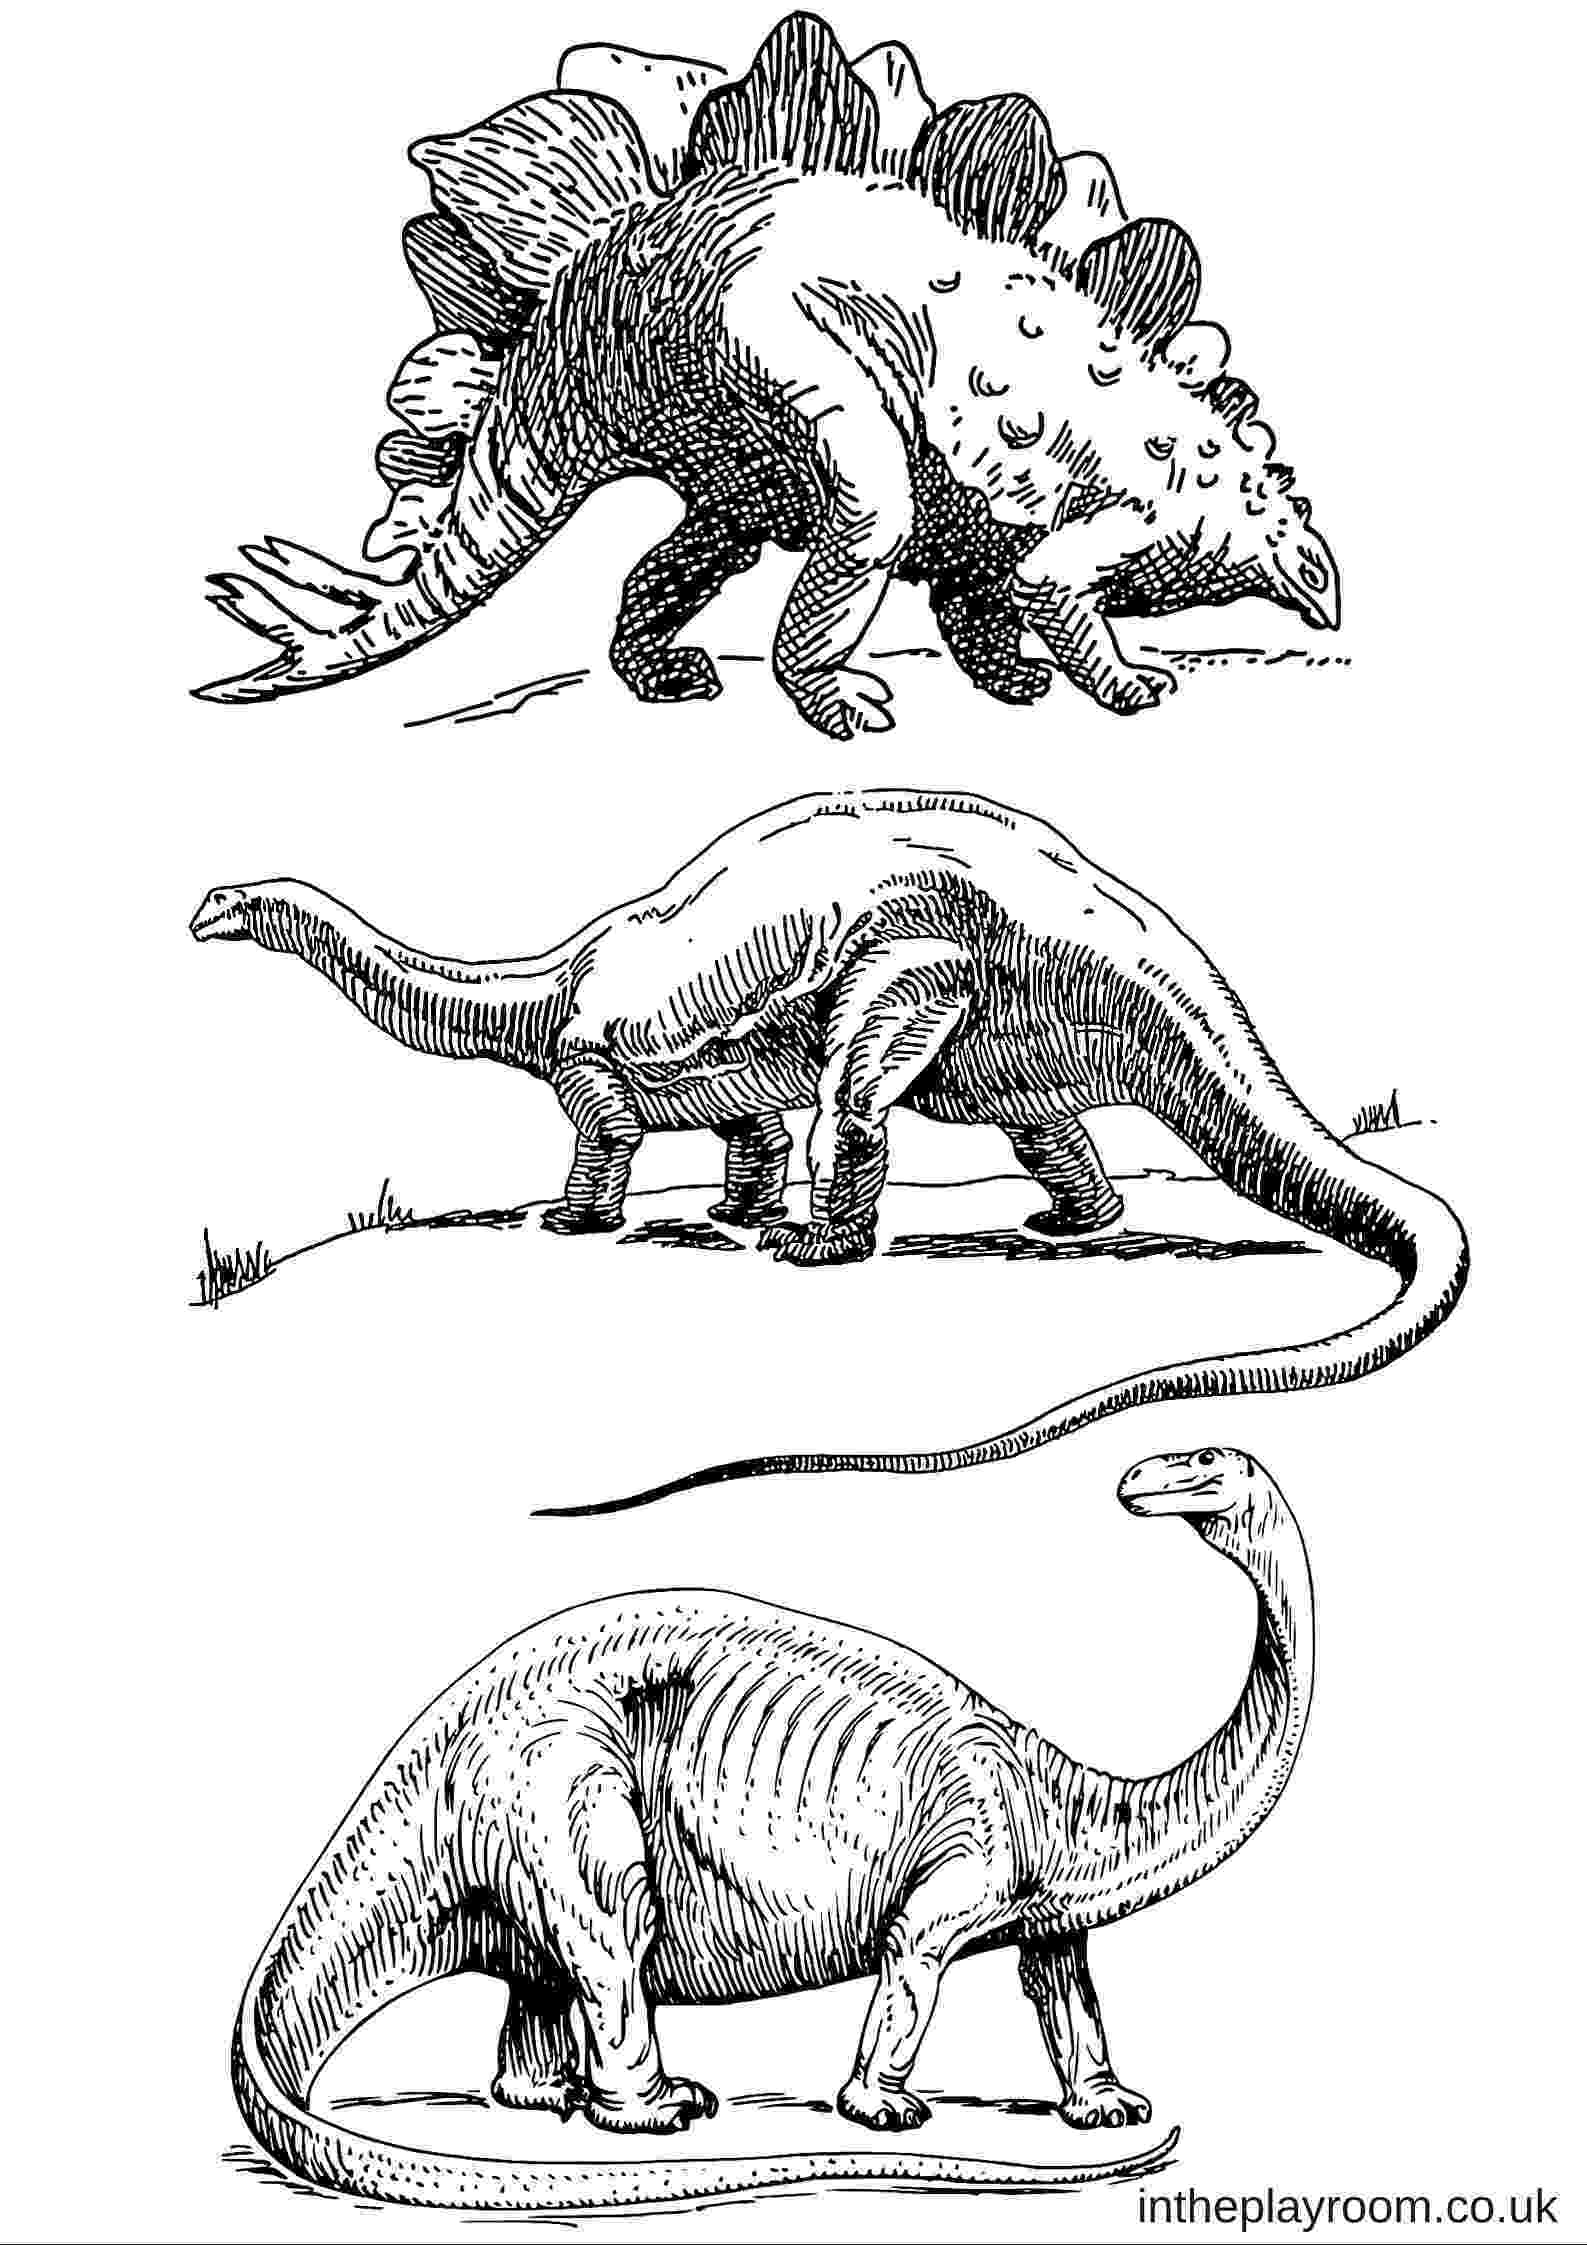 colouring pages dinosaurs printable coloring pages dinosaur free printable coloring pages pages colouring dinosaurs printable